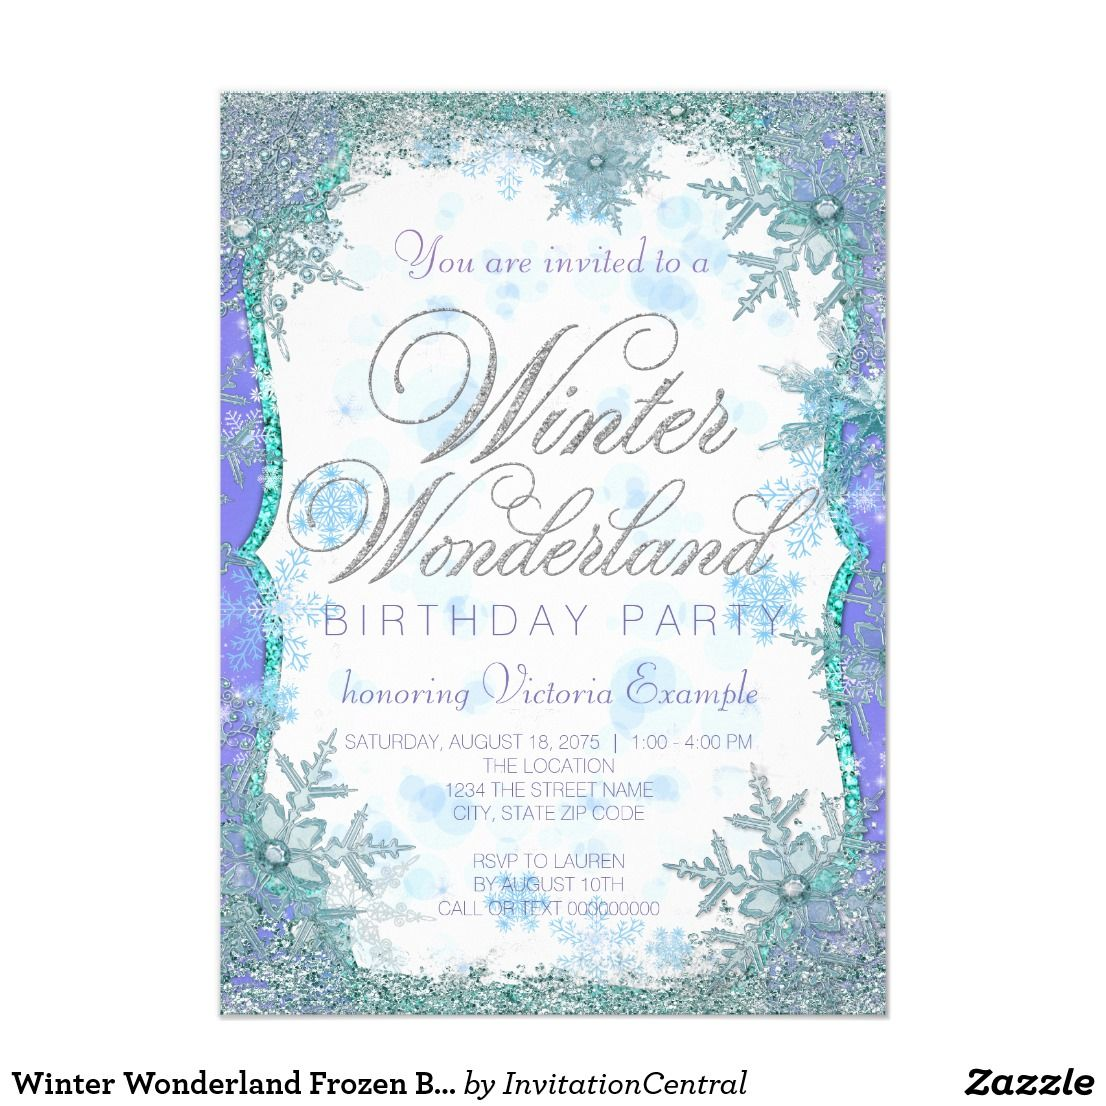 Winter Wonderland Frozen Birthday Party Invitation Zazzle